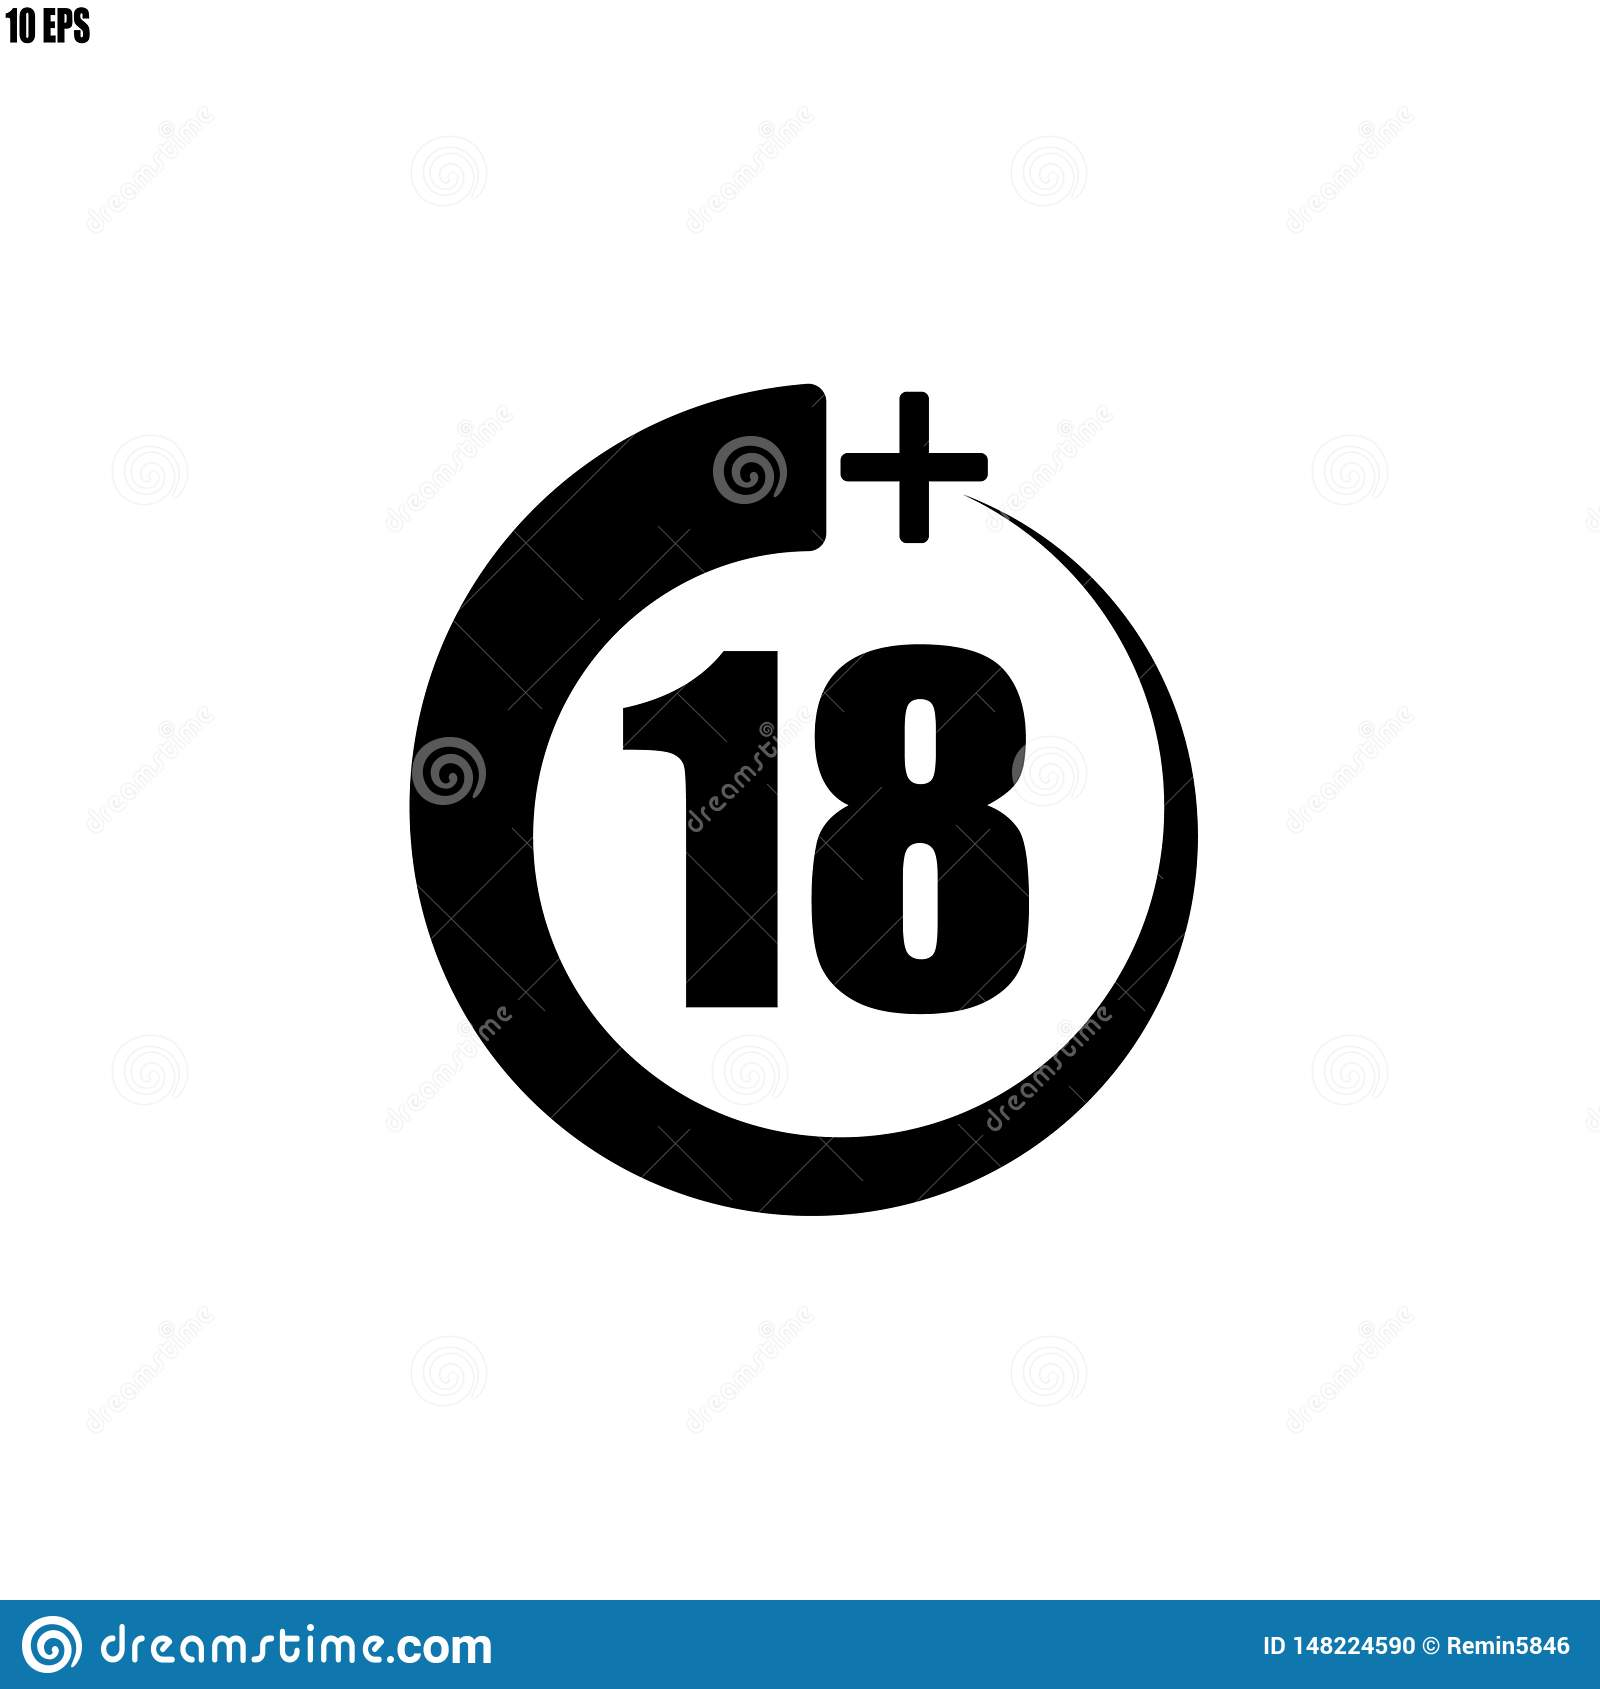 18+ icon, sign.Information icon for age limit - vector illustration